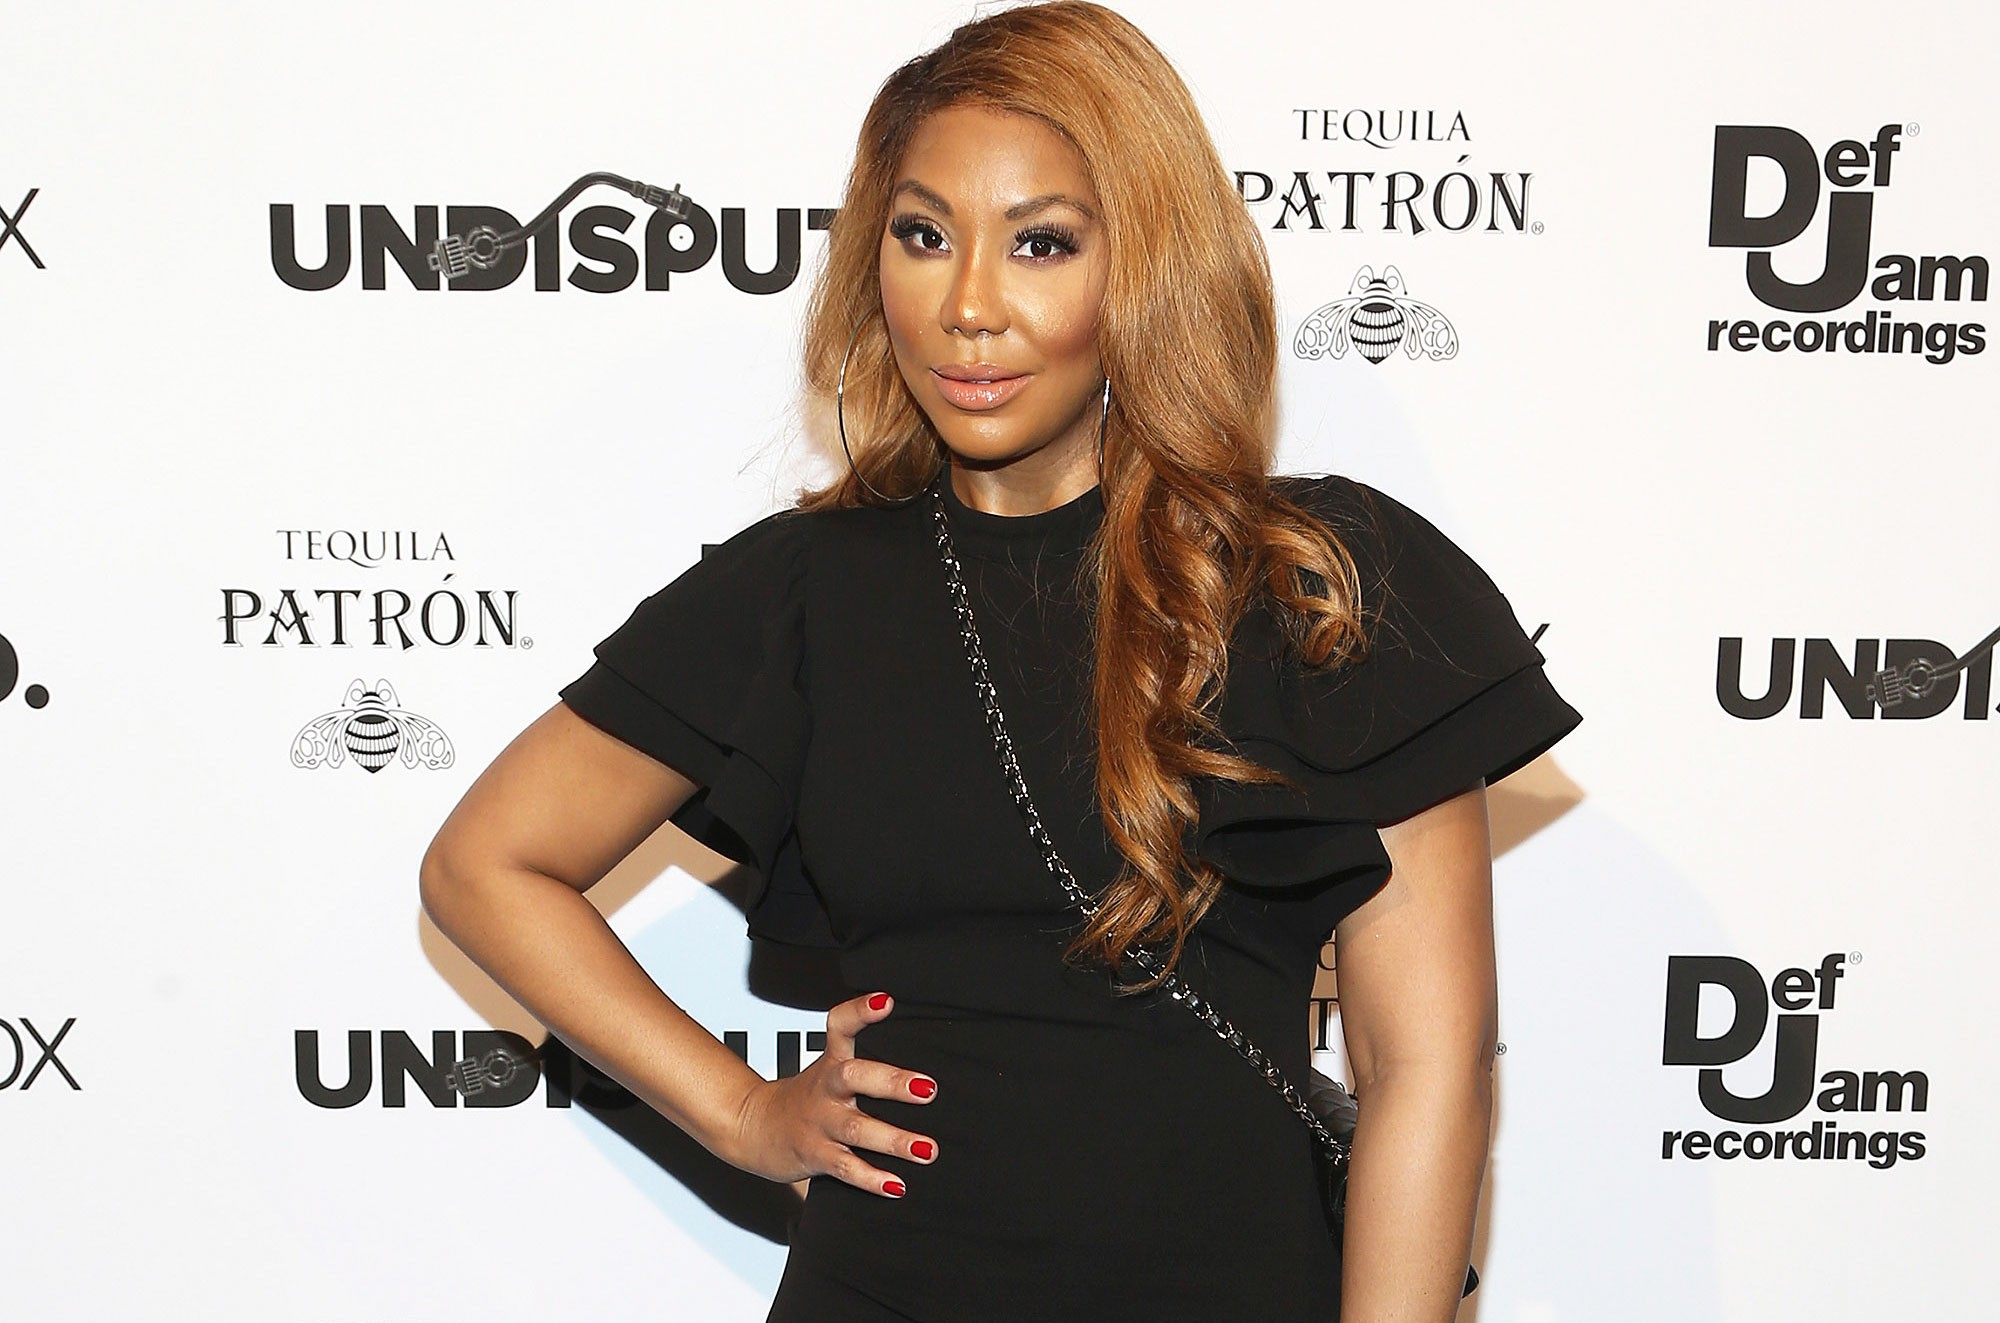 Tamar Braxton Addresses Plastic Surgery On Her Podcast - Listen To Her Point Of View Here